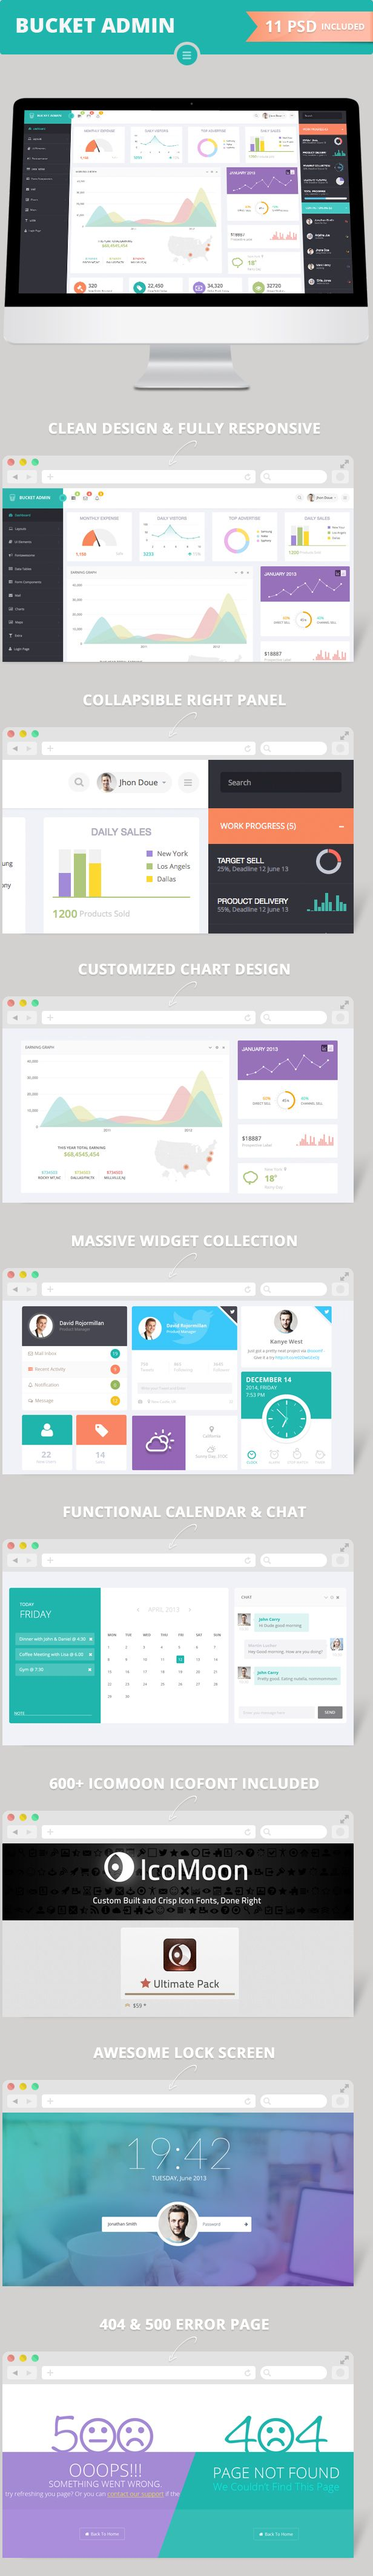 Site Templates - Bucket Admin Bootstrap 3 Responsive Flat Dashboard | ThemeForest